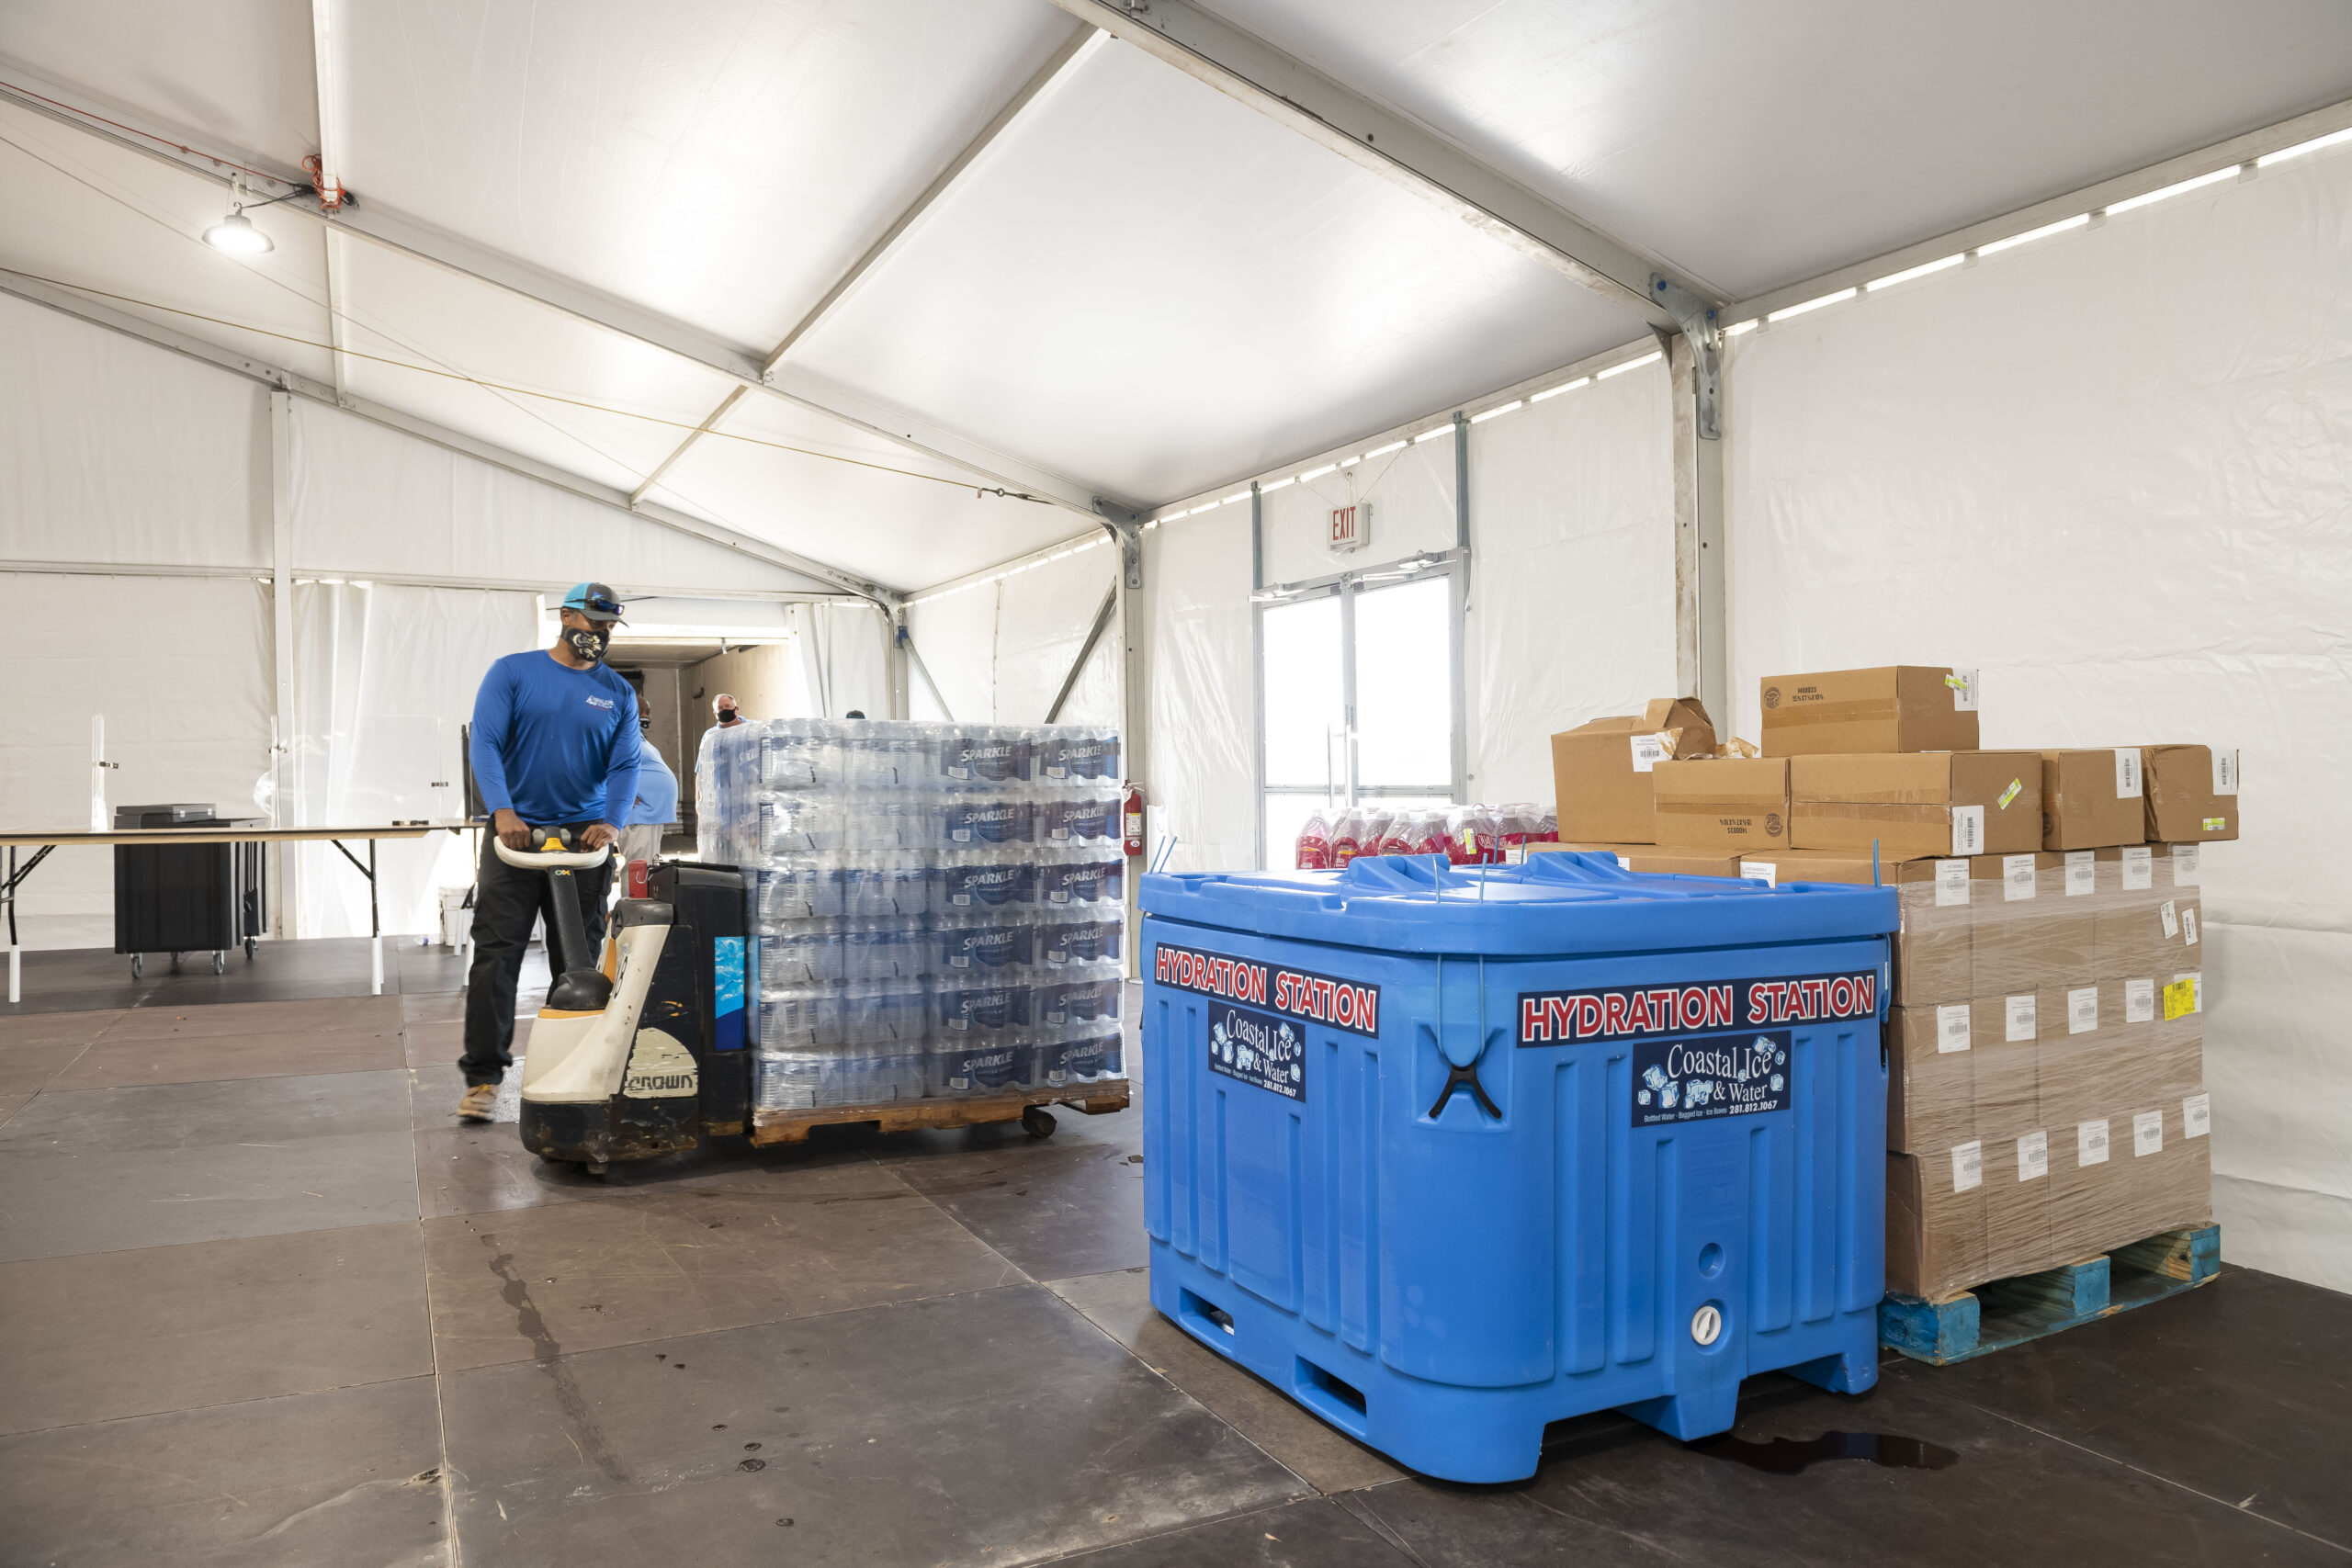 Lodging Solutions/Industrial Tents Potable Water Supplies for Disaster Relief